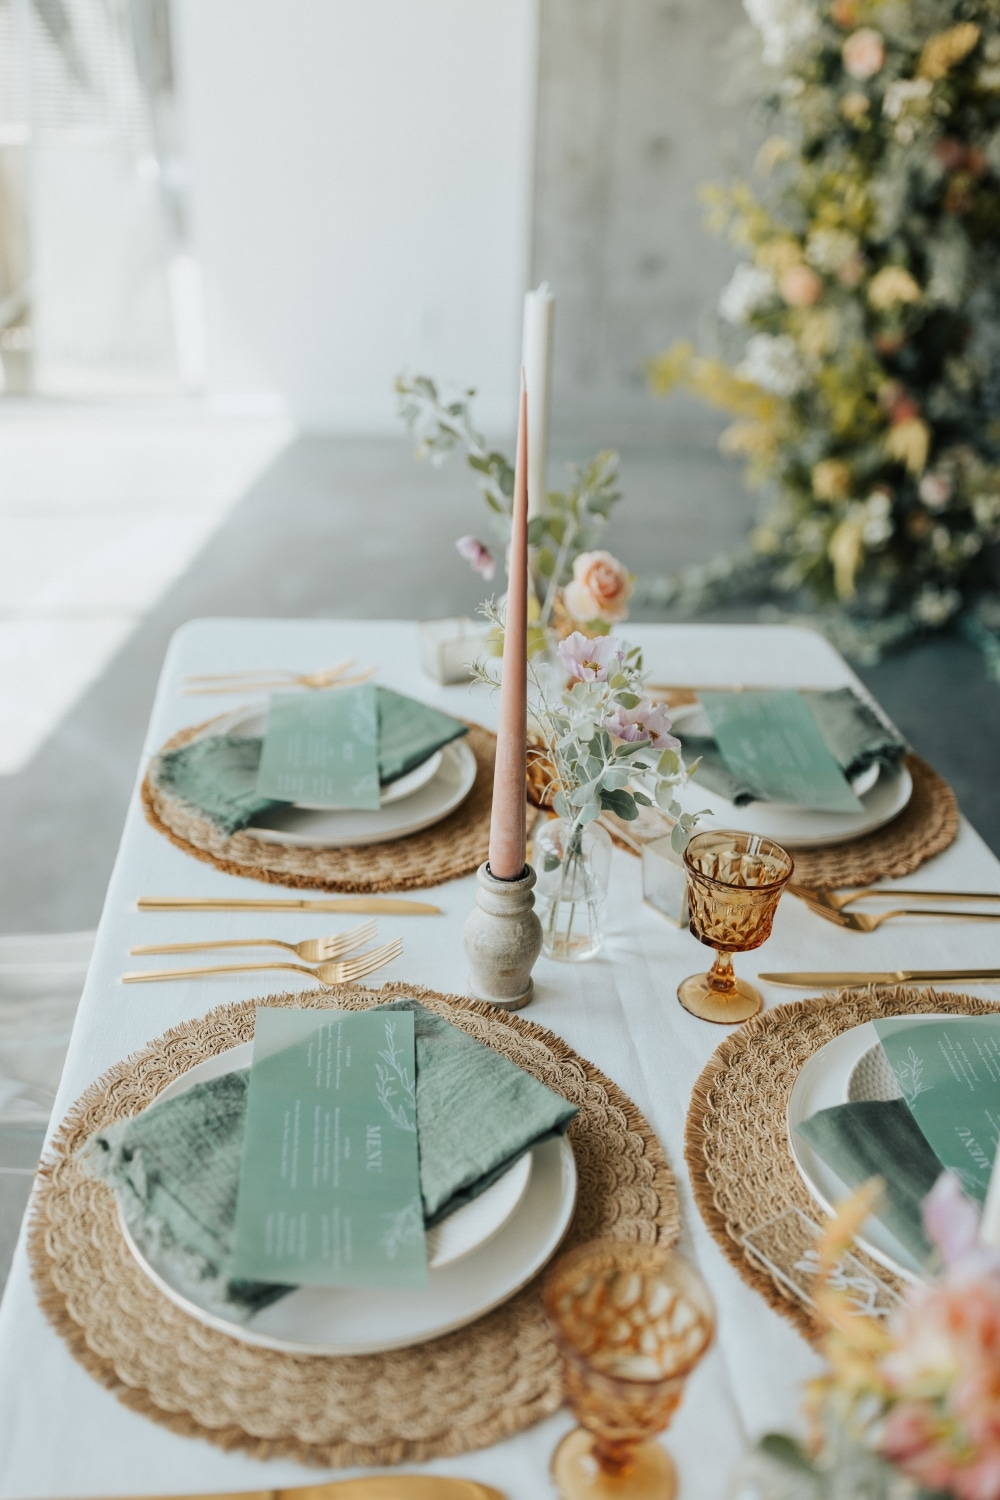 gold plates with emerald green napkins and florals in the background